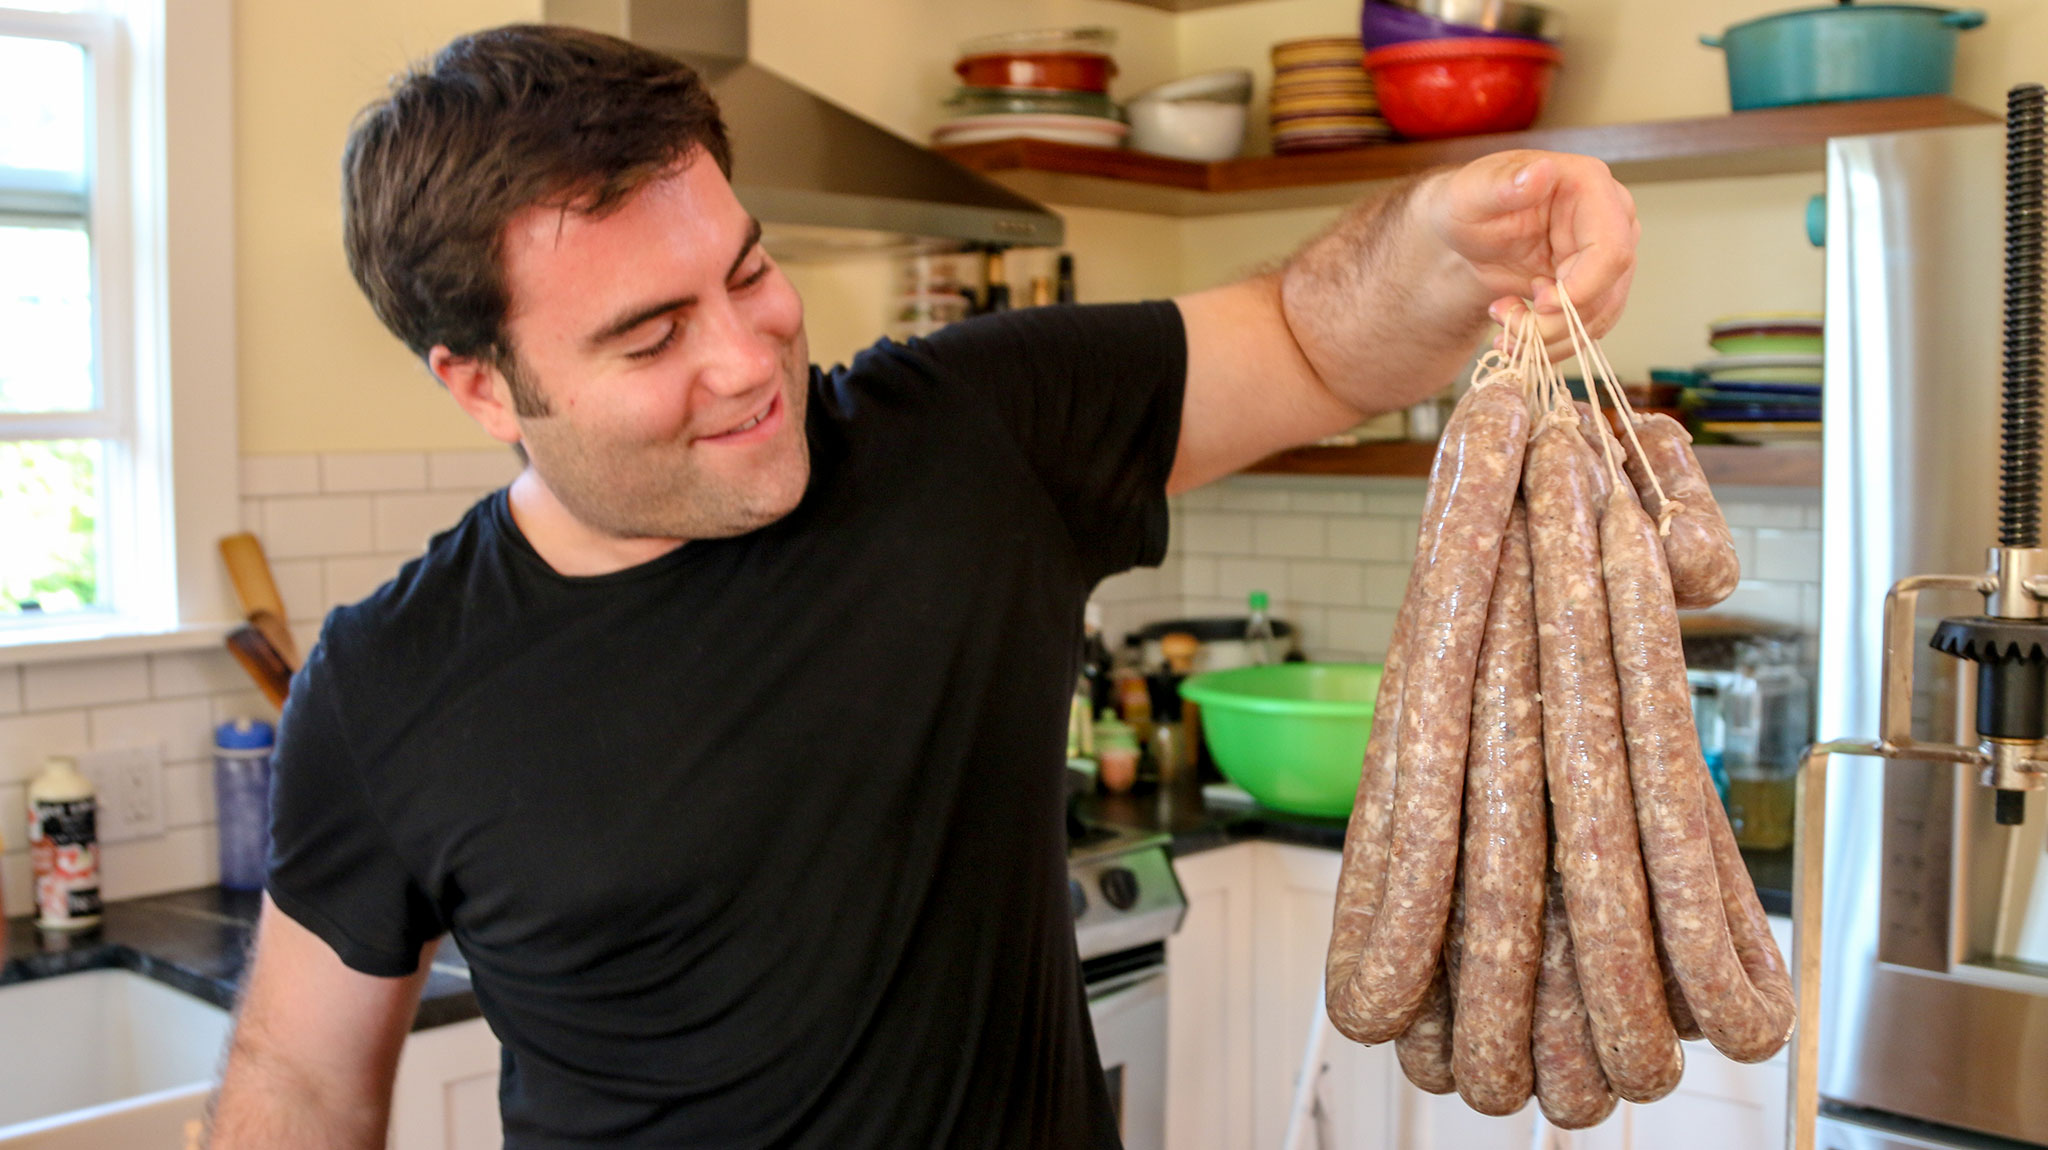 How to make Kielbasa